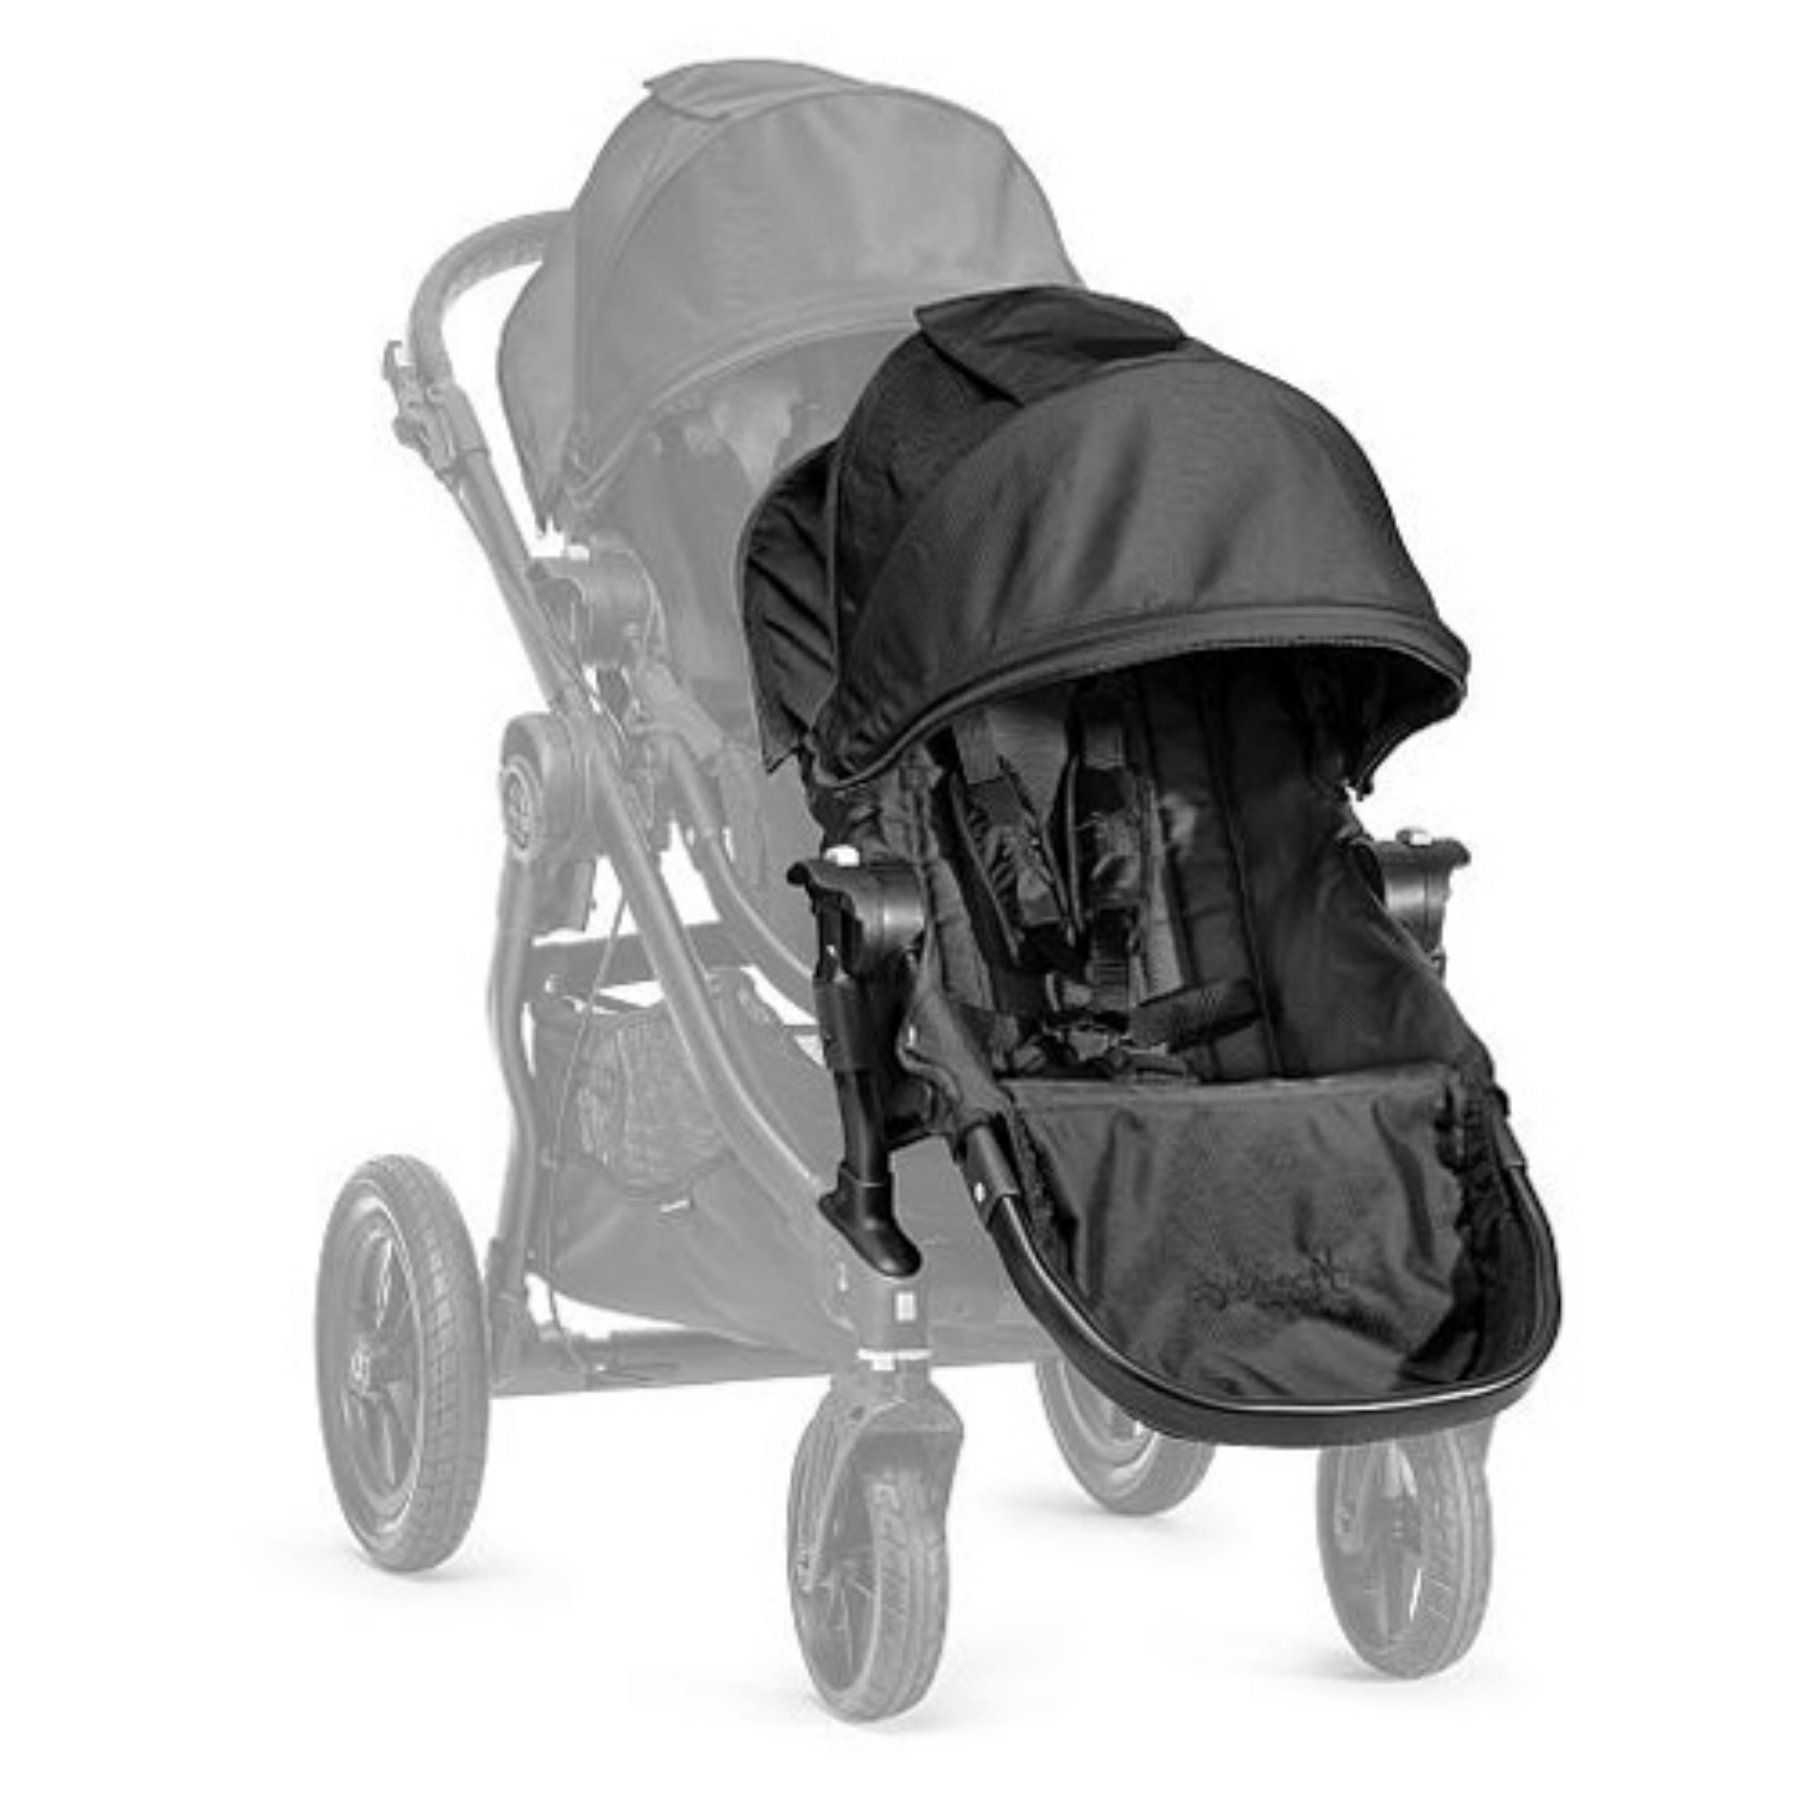 Baby Jogger City Select Second Seat Stroller Kit Black Bj03410 With Images Baby Jogger City Select Baby Jogger City Select Double City Select Double Stroller